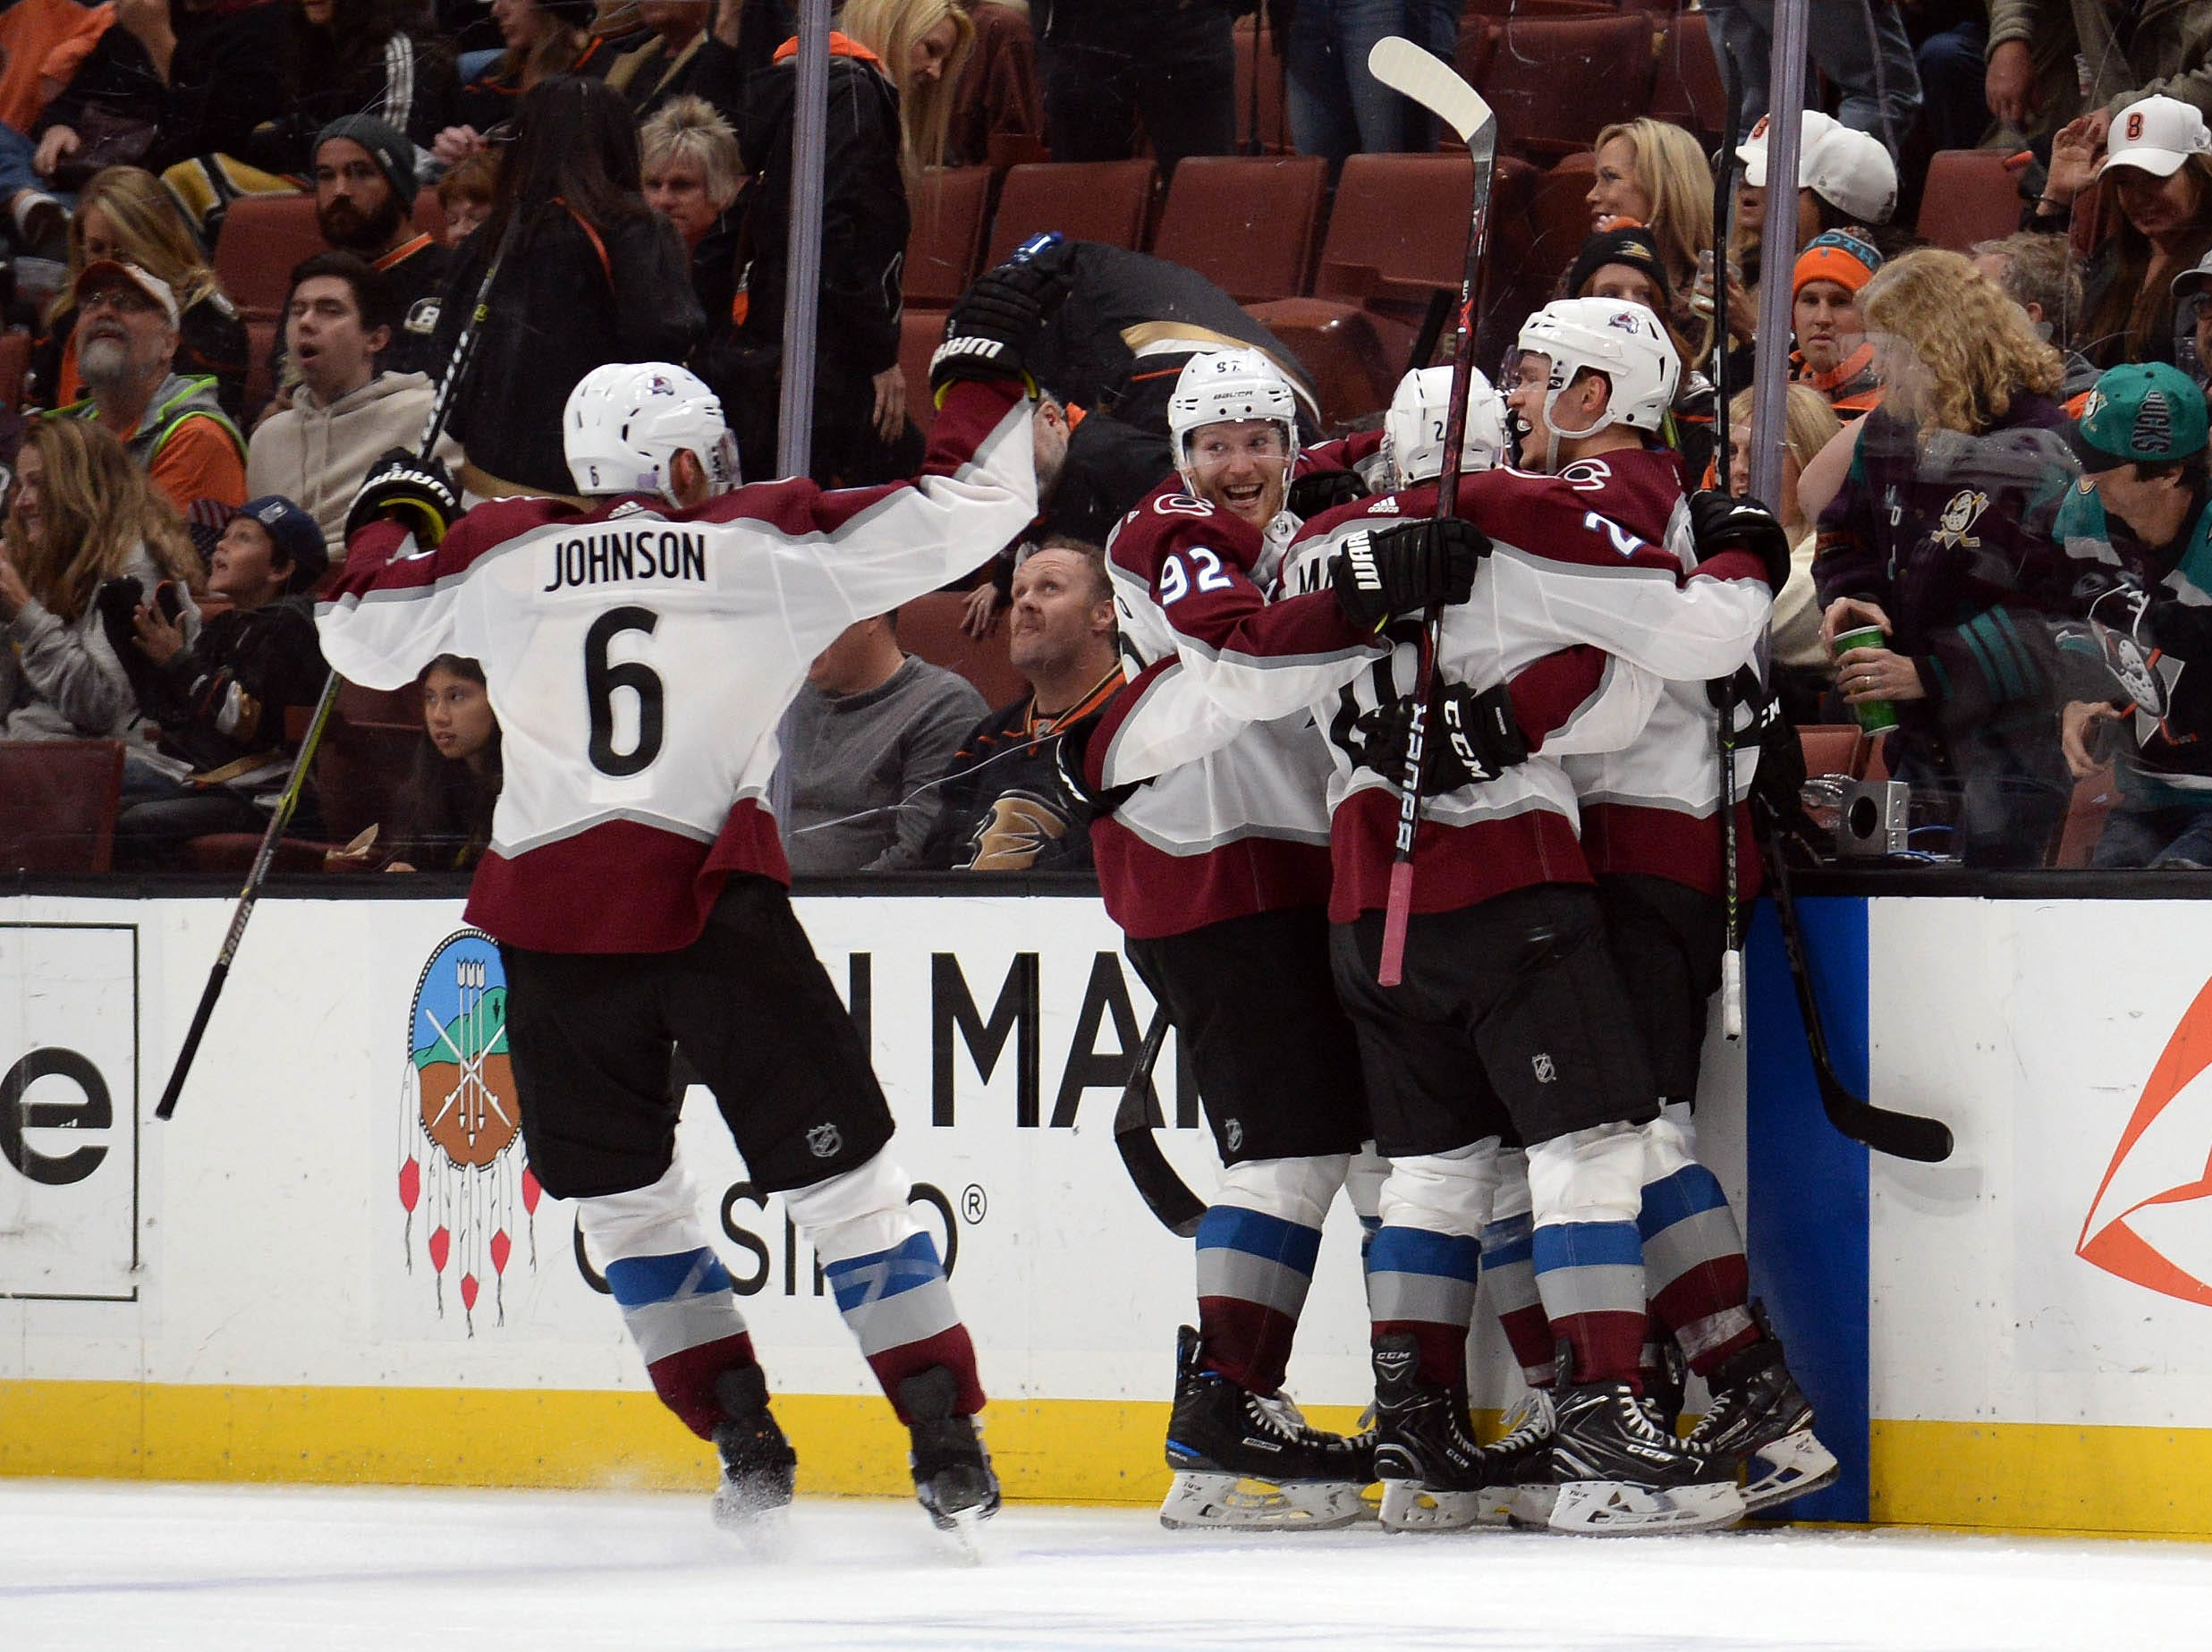 Nov. 18: Colorado Avalanche right wing Mikko Rantanen (96) celebrates his game-winning goal in overtime against the Anaheim Ducks with center Nathan MacKinnon (29), defenseman Erik Johnson (6) and left wing Gabriel Landeskog (92).